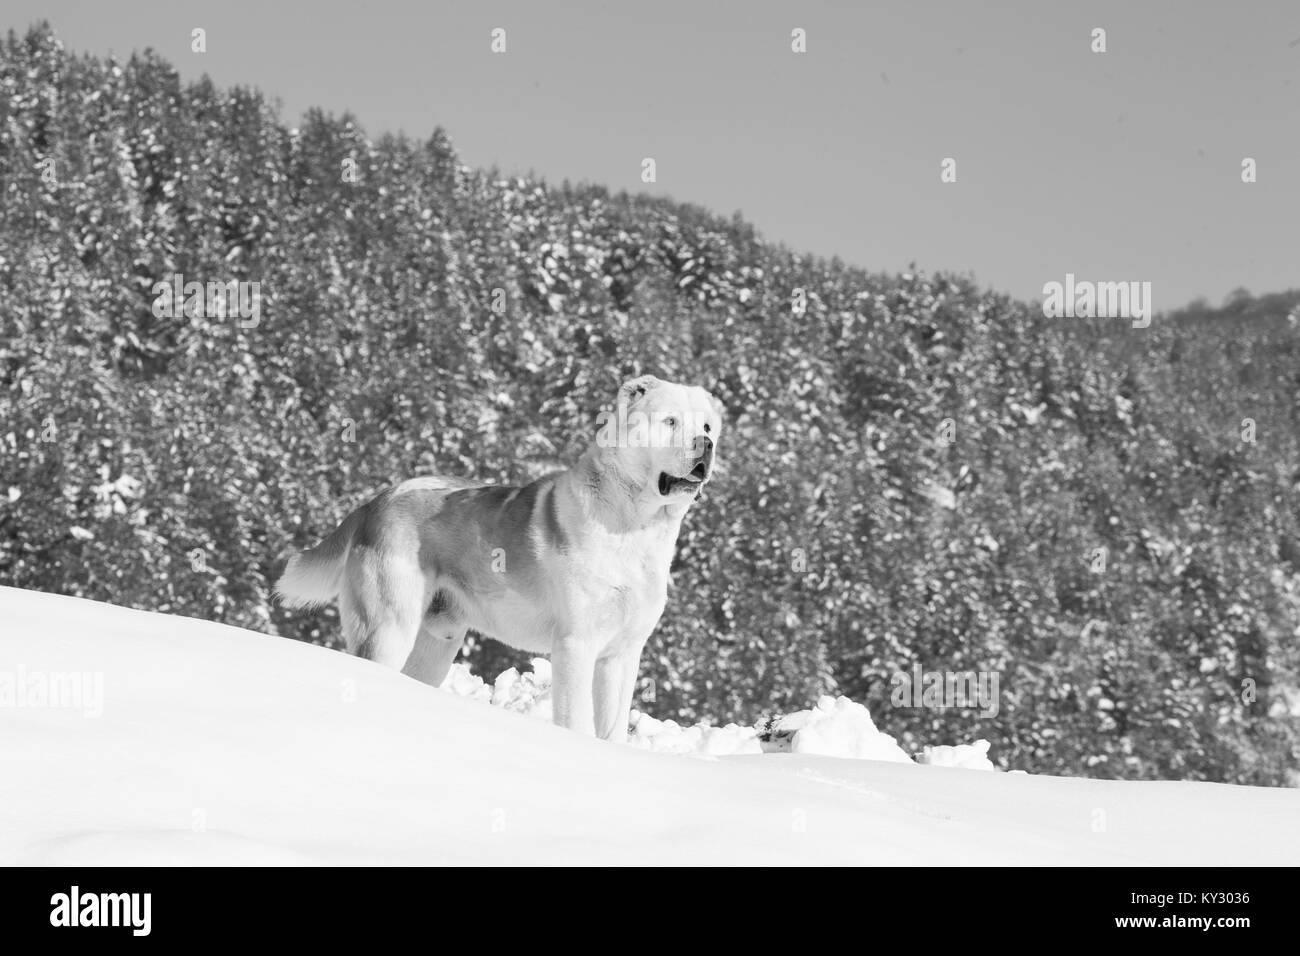 Big dog guarding in winter field, alabai dog, asian shepherd, black and white dog background - Stock Image